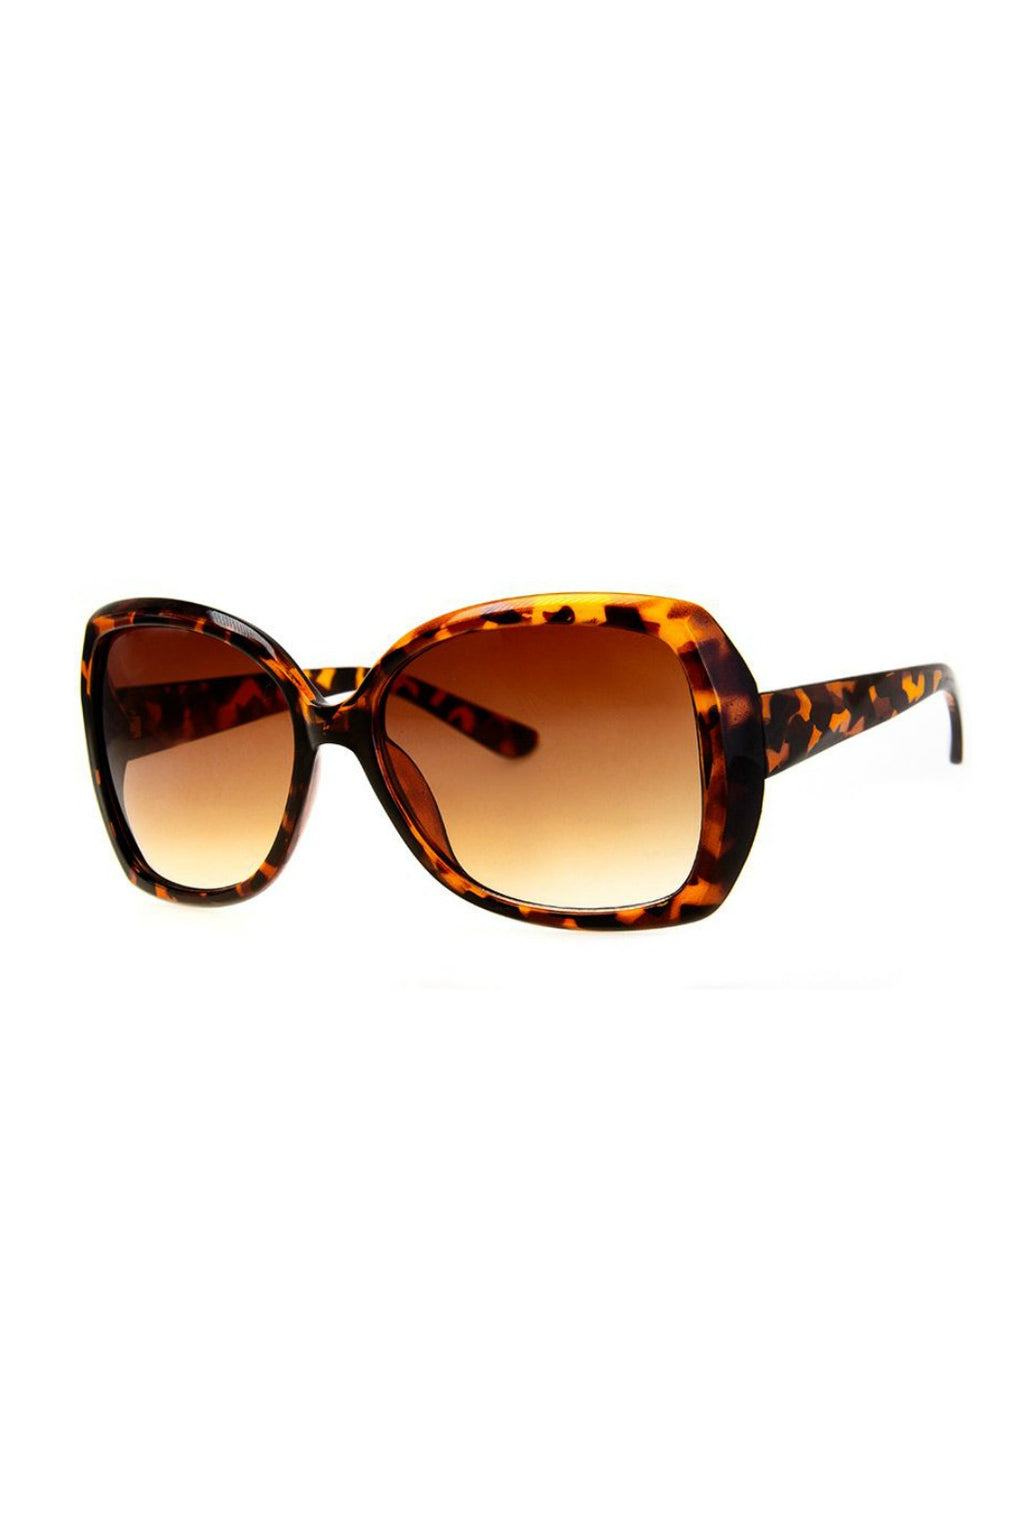 Confidential Sunnies - Tort